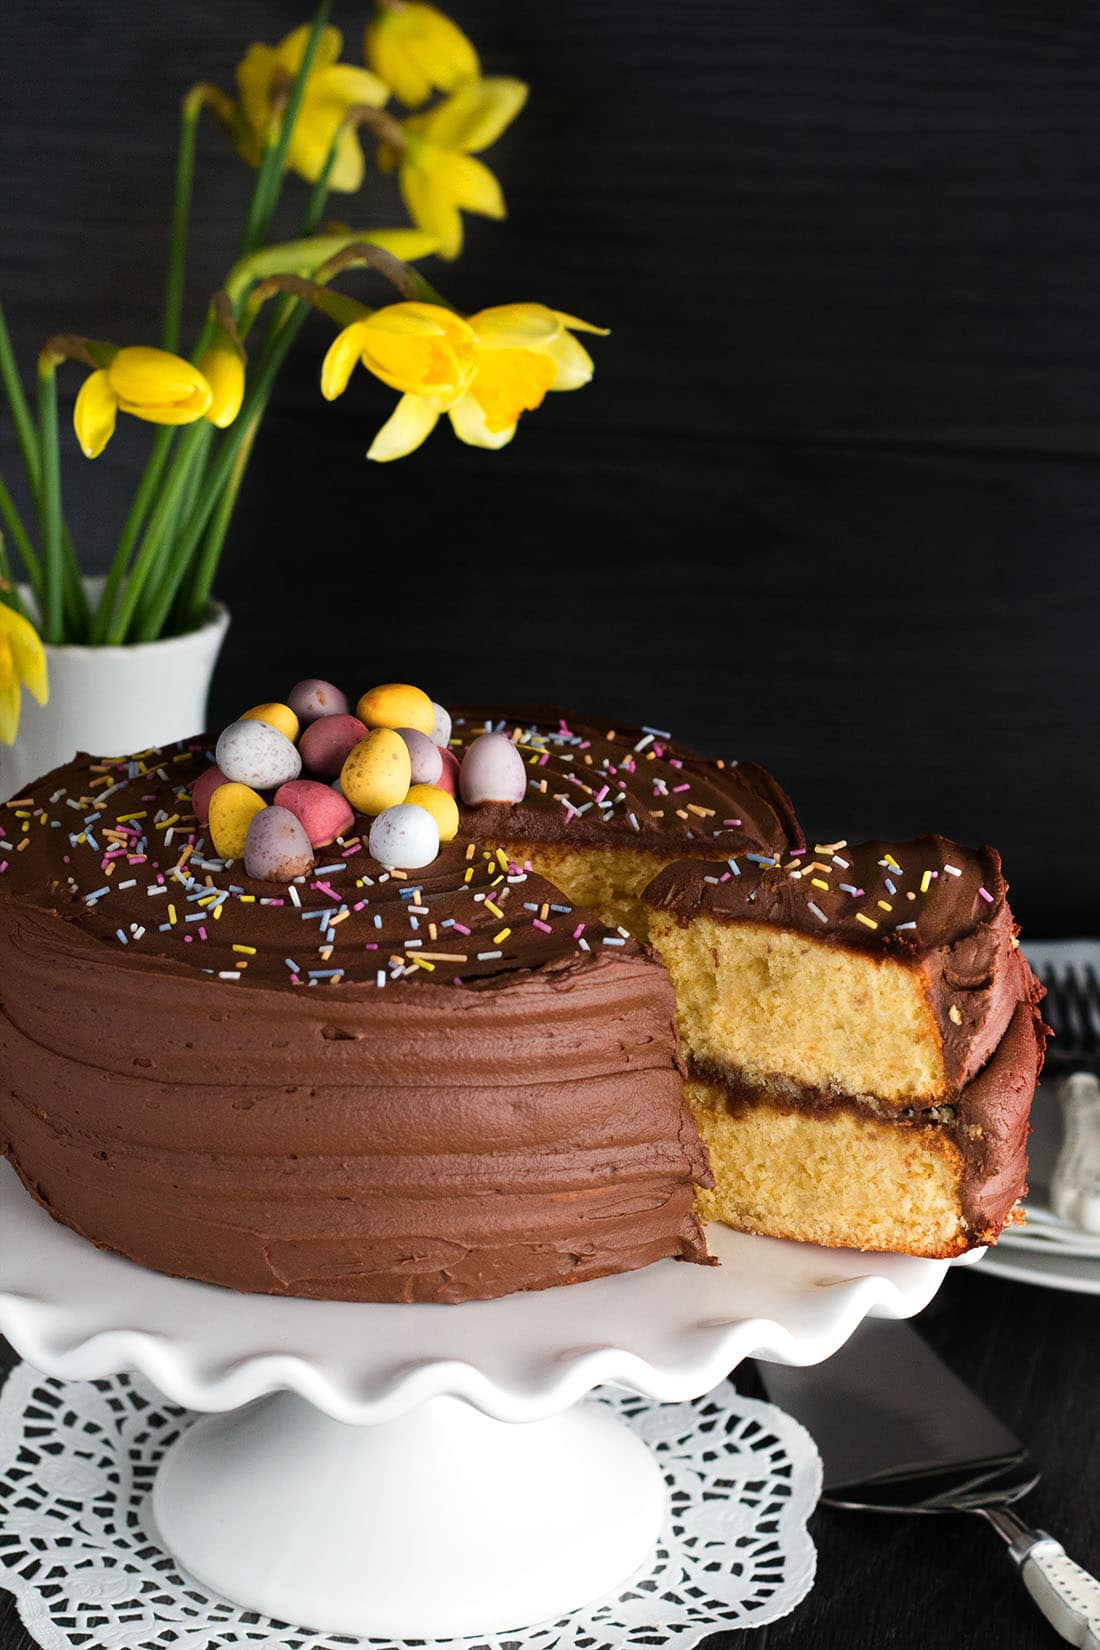 A piece of yellow celebration cake with chocolate frosting being removed from the whole cake, with spring flowers in the background